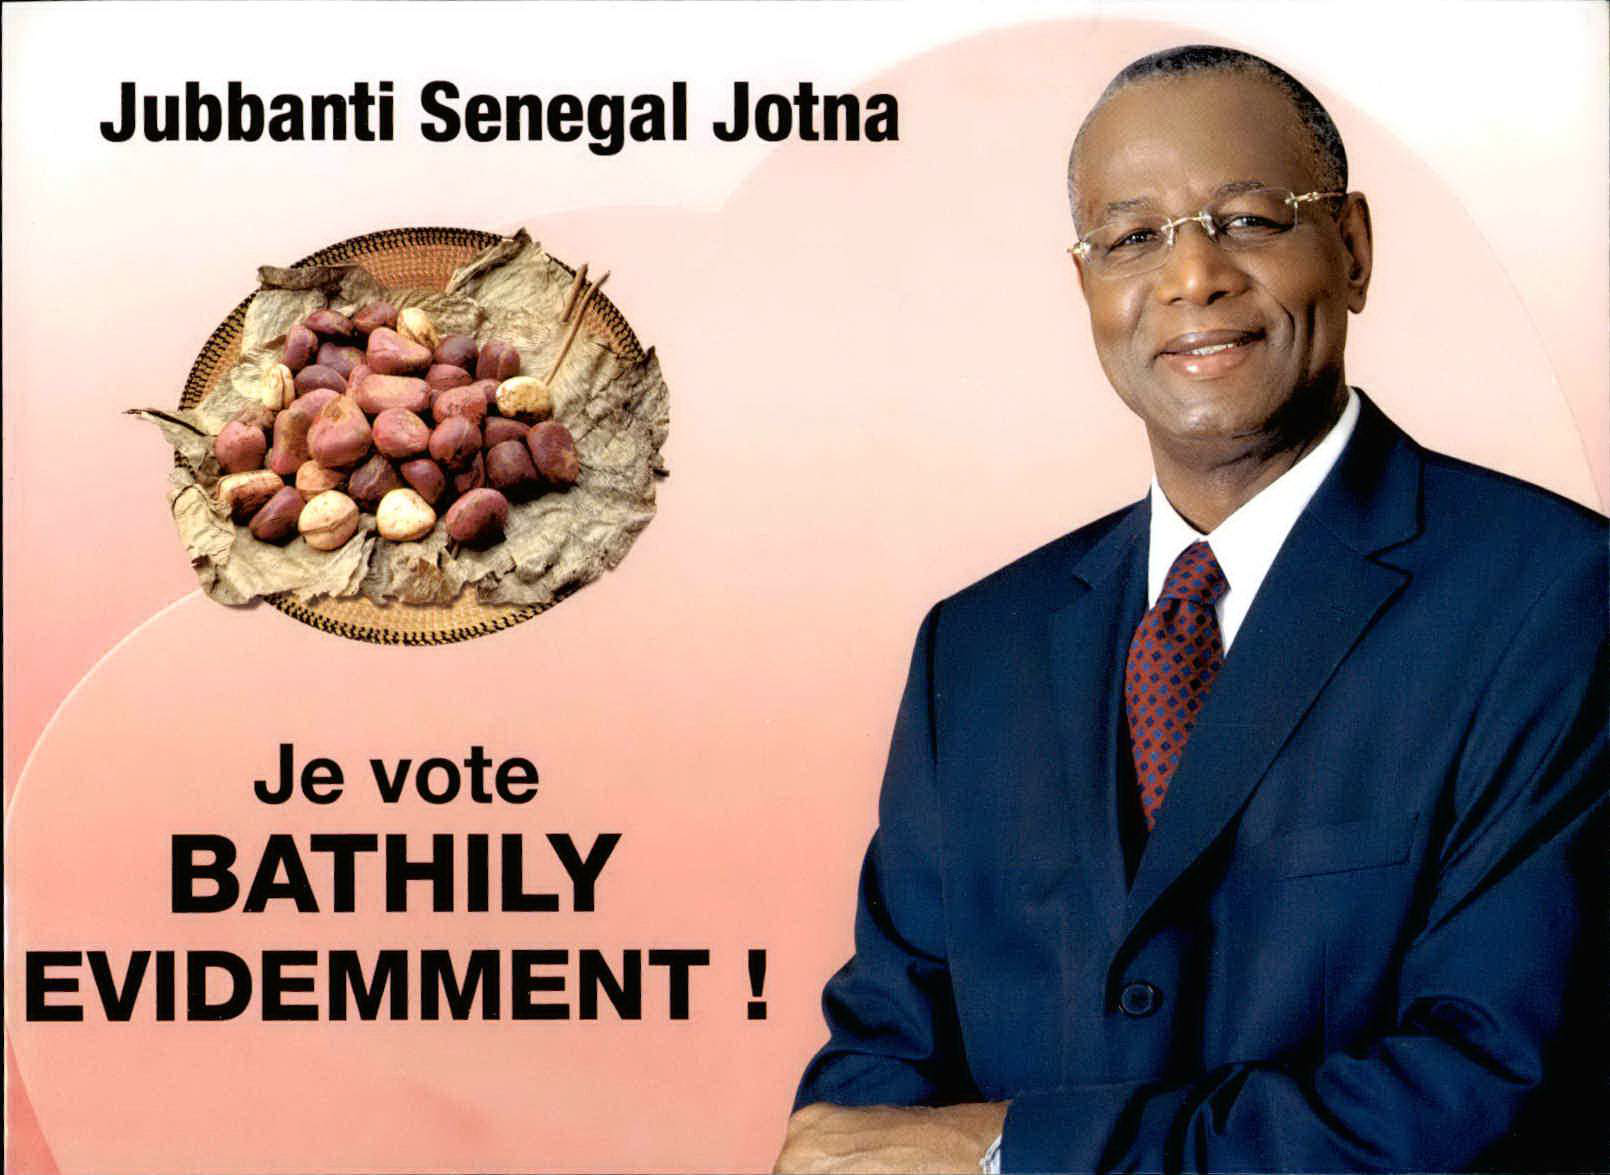 Abdoulaye Bathily campaign image